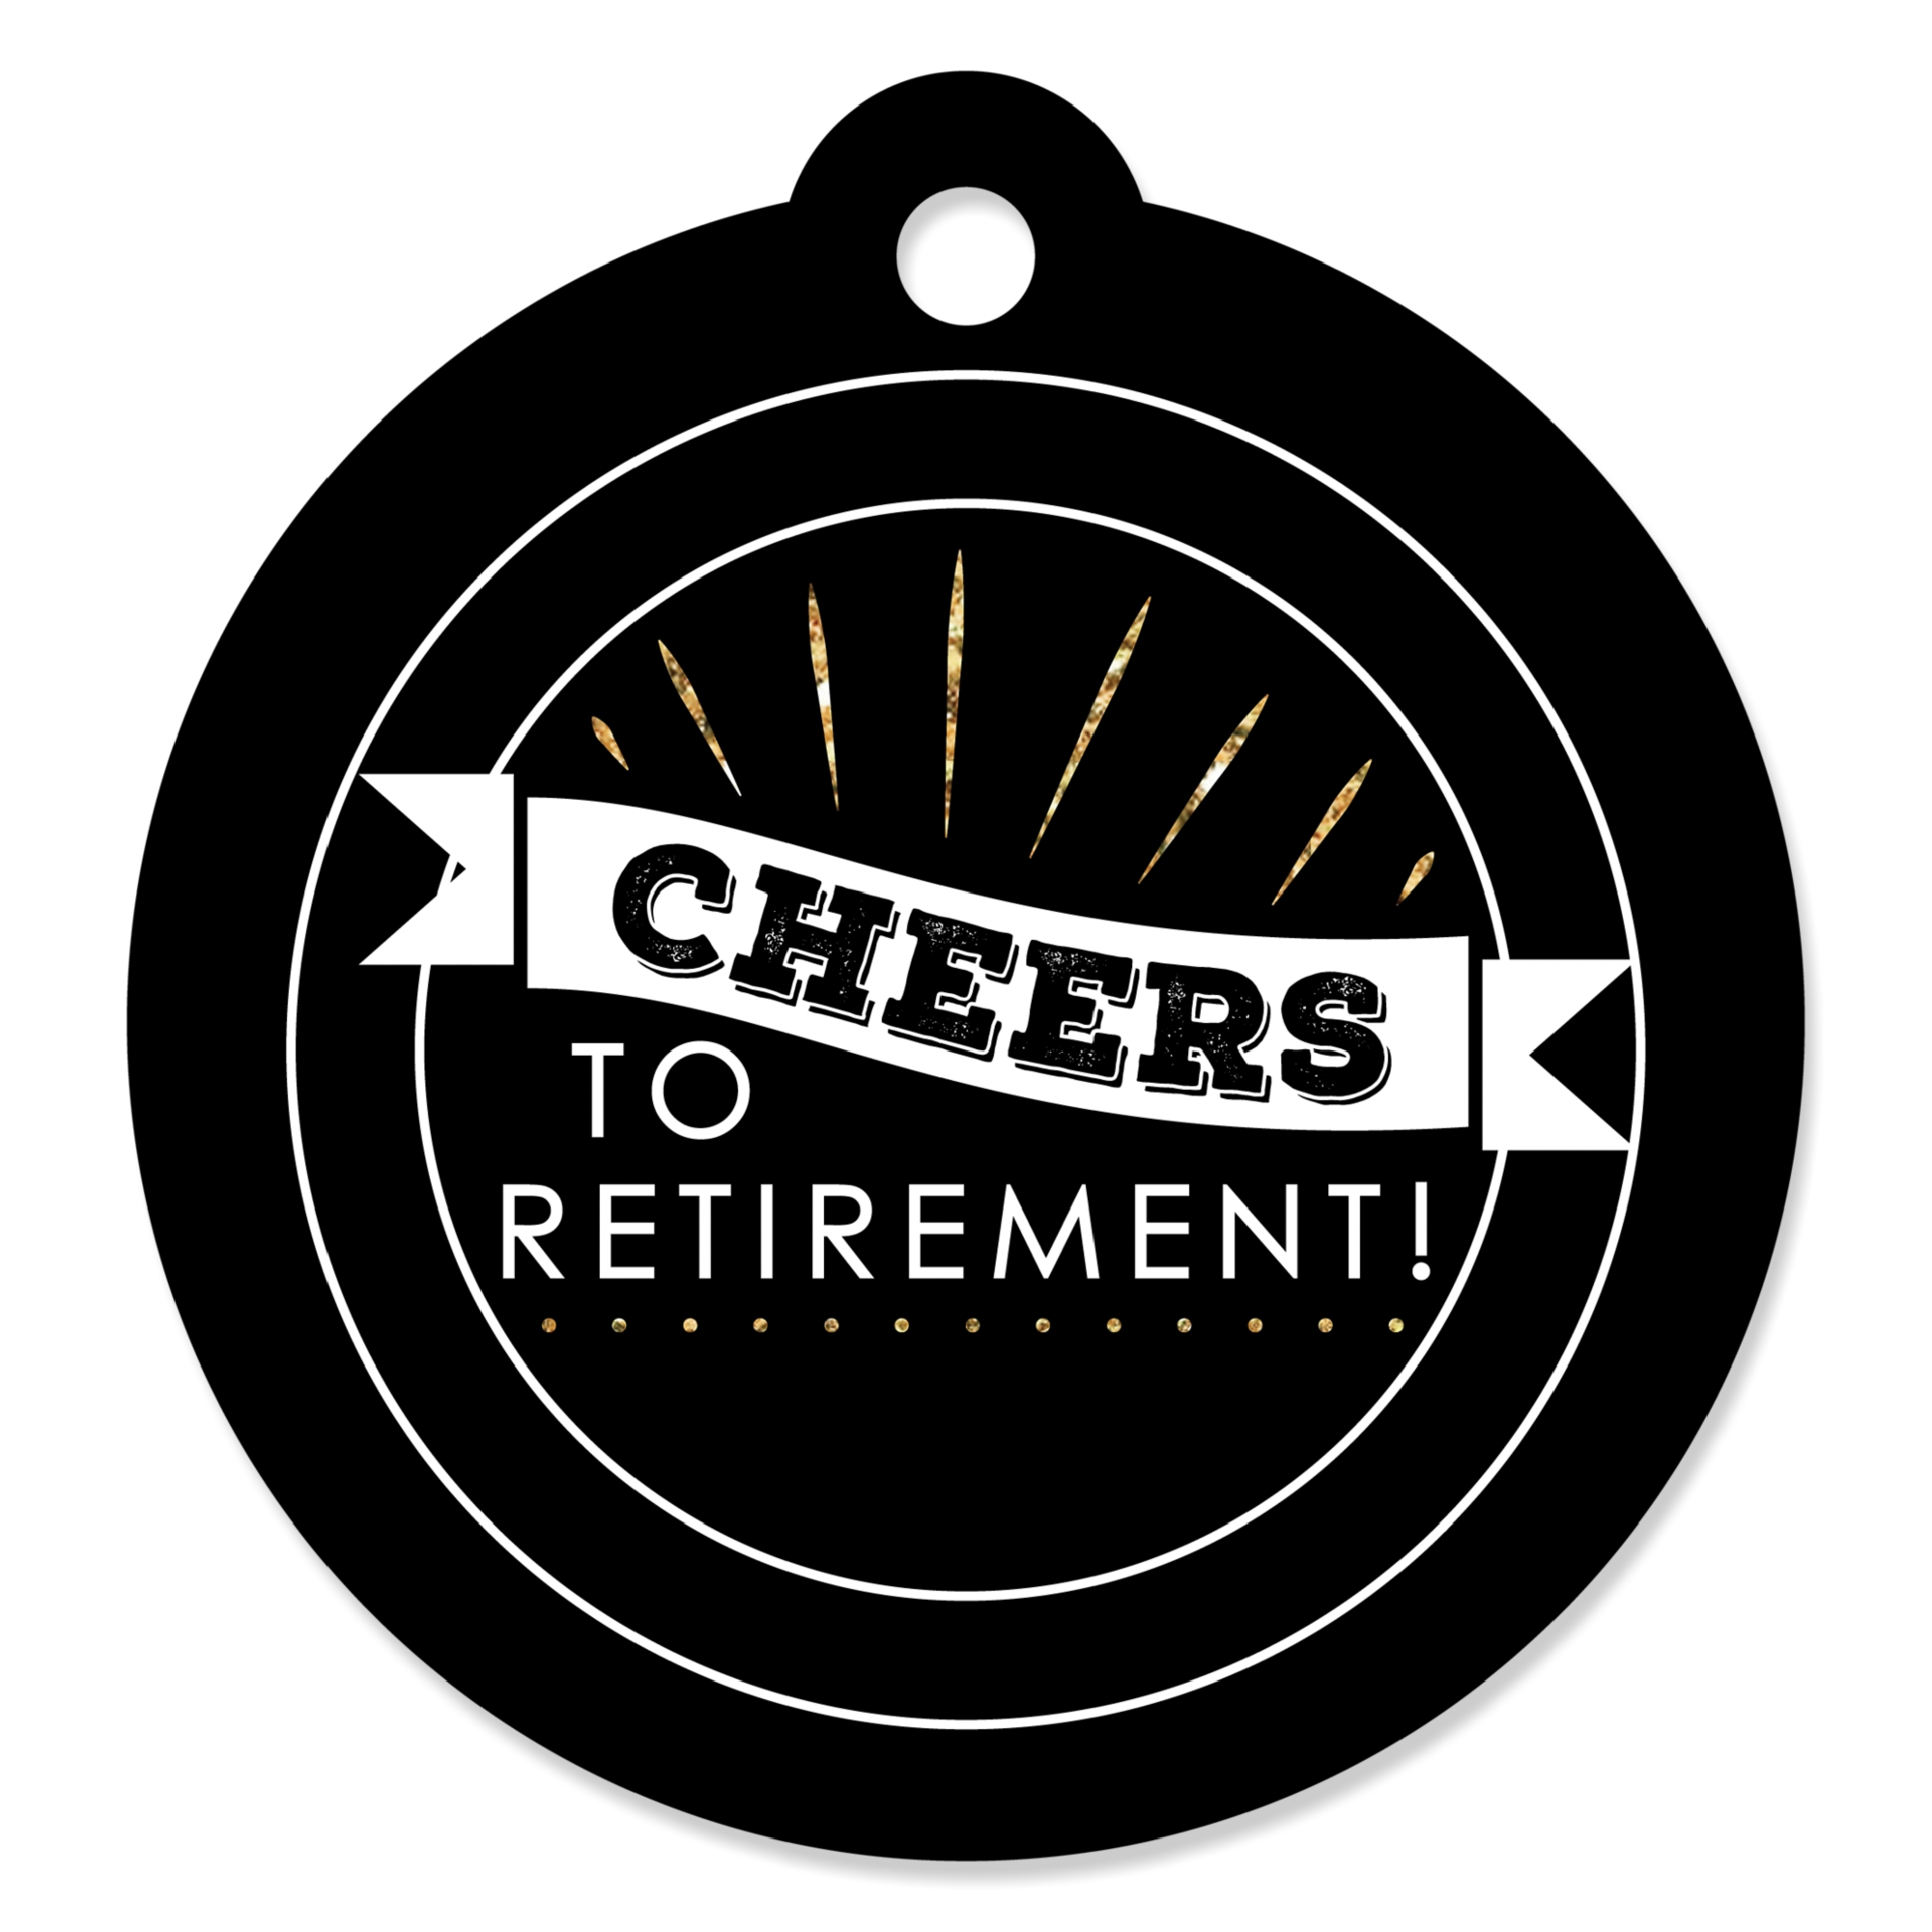 Happy Retirement - Retirement Party Favor Gift Tags (Set of 20)